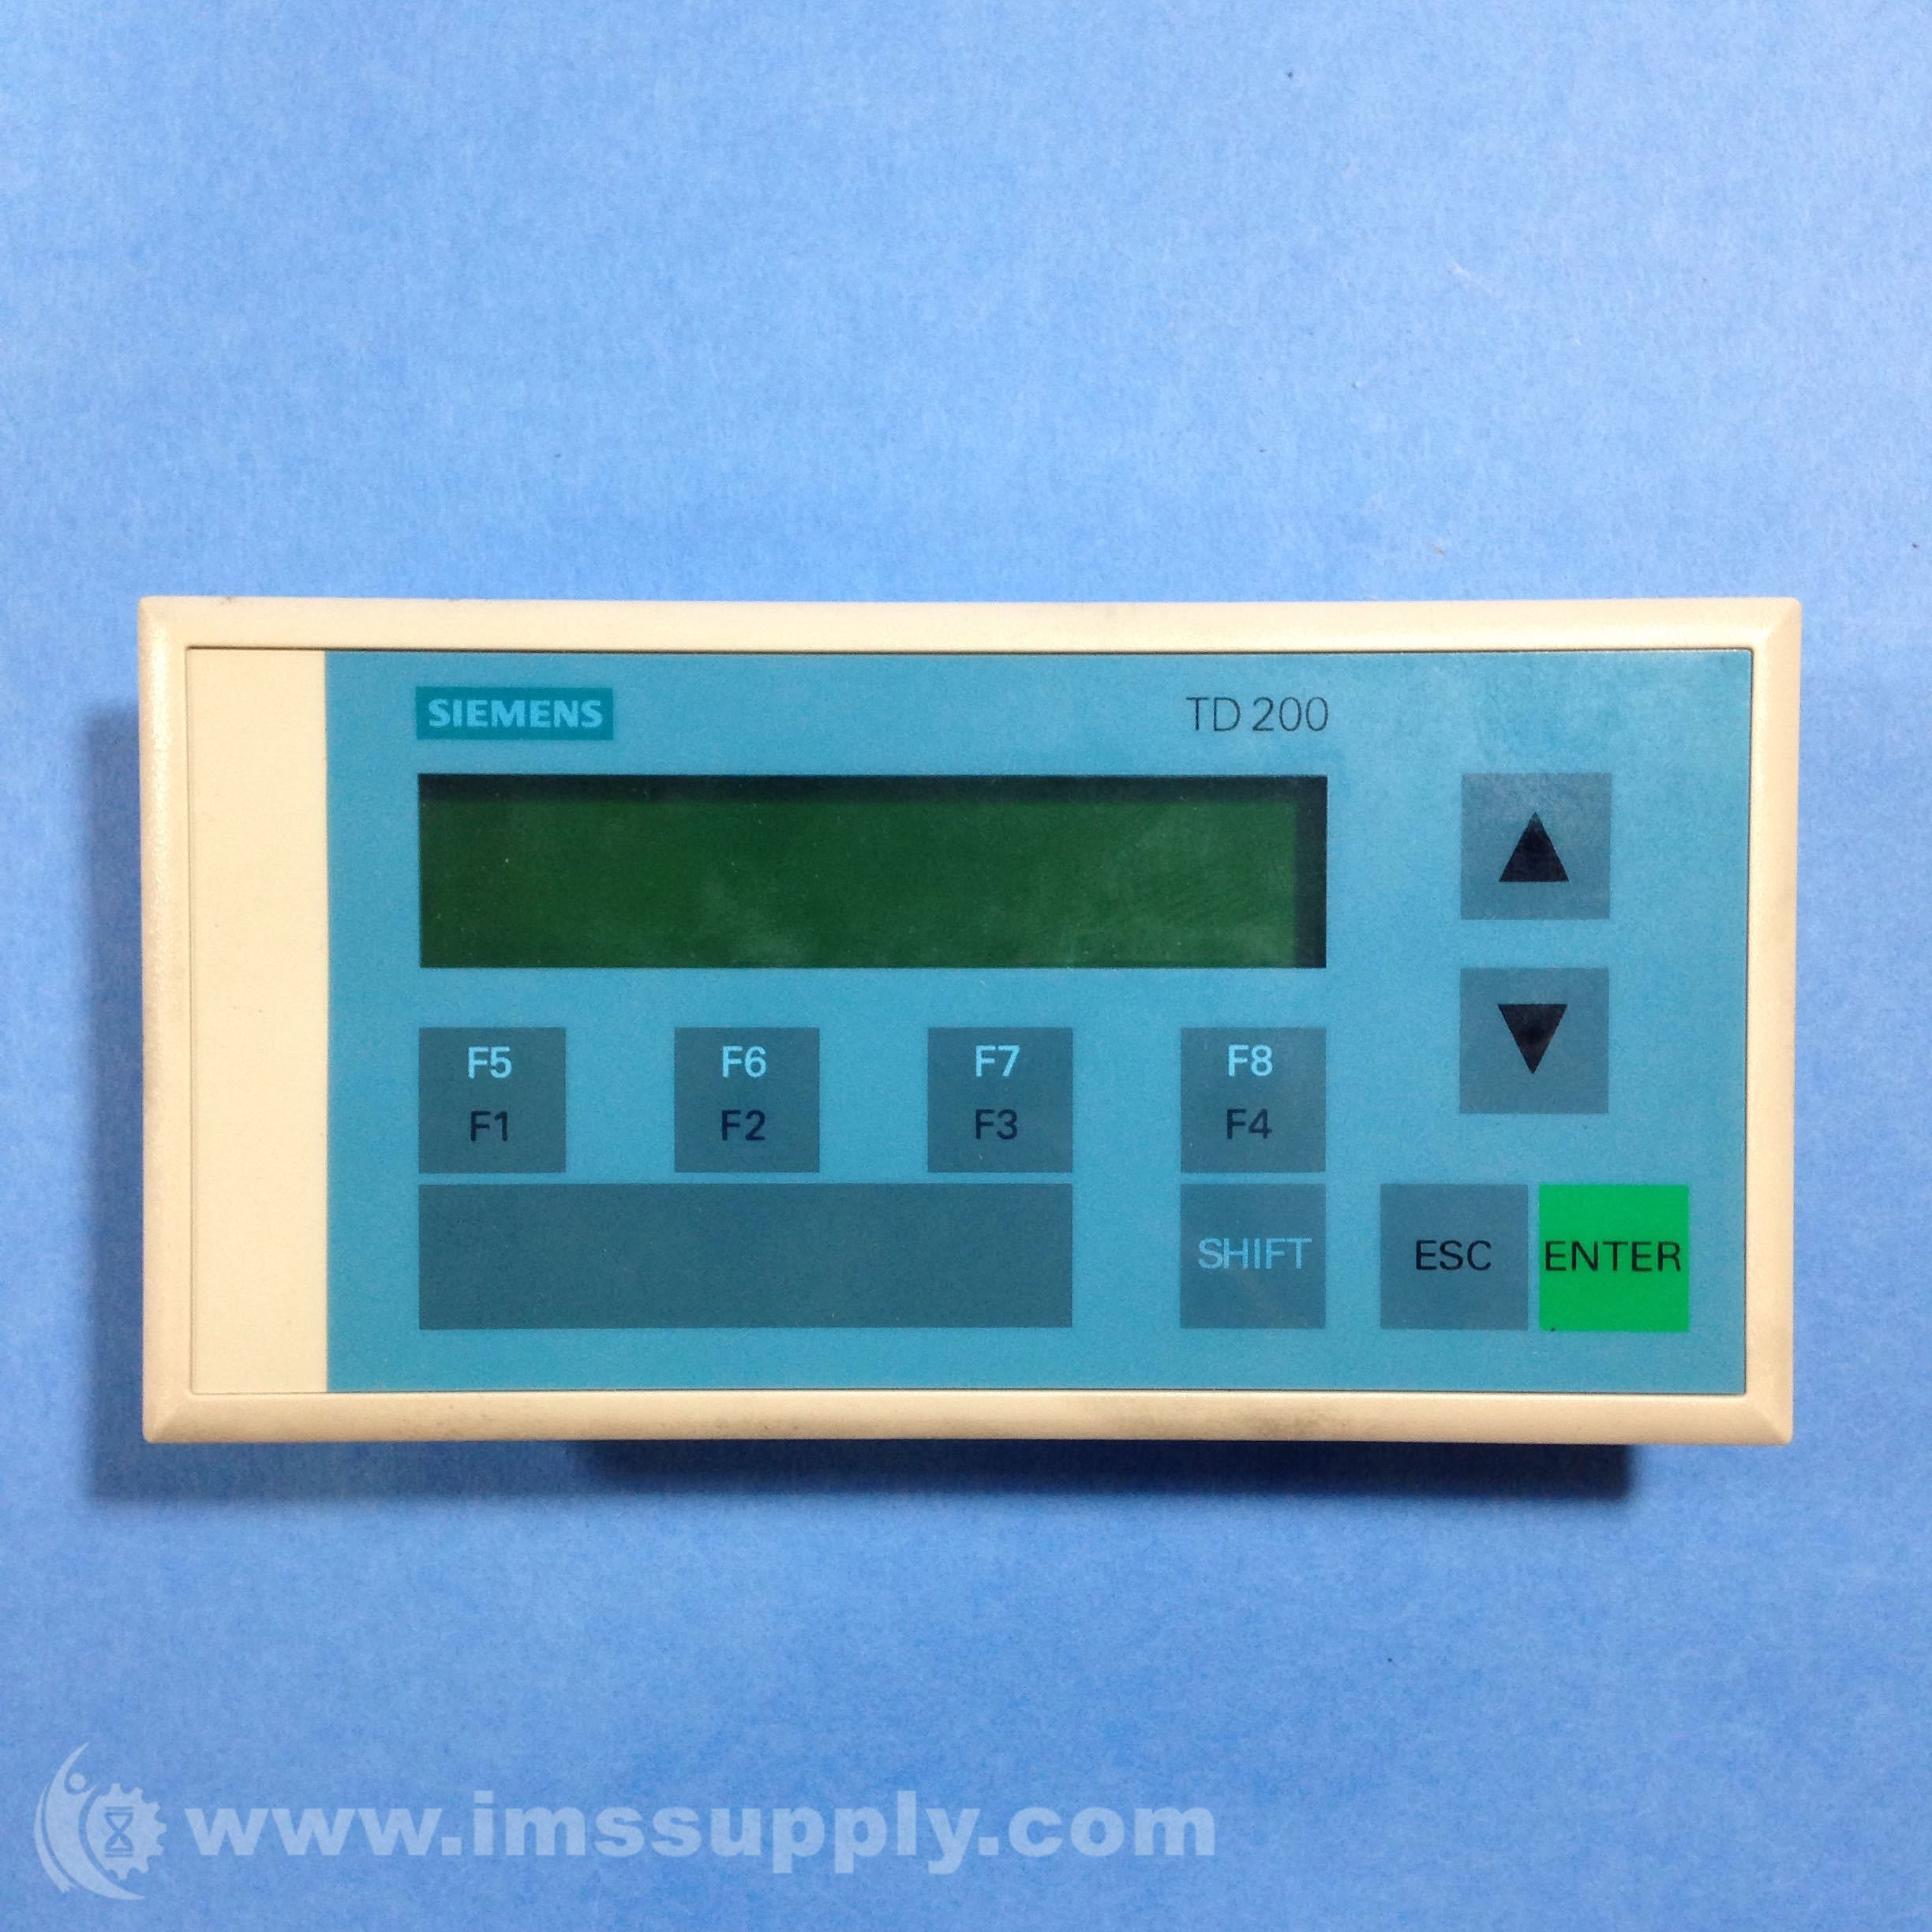 Siemens simatic s7 td200 operator interface ims supply more views sciox Image collections